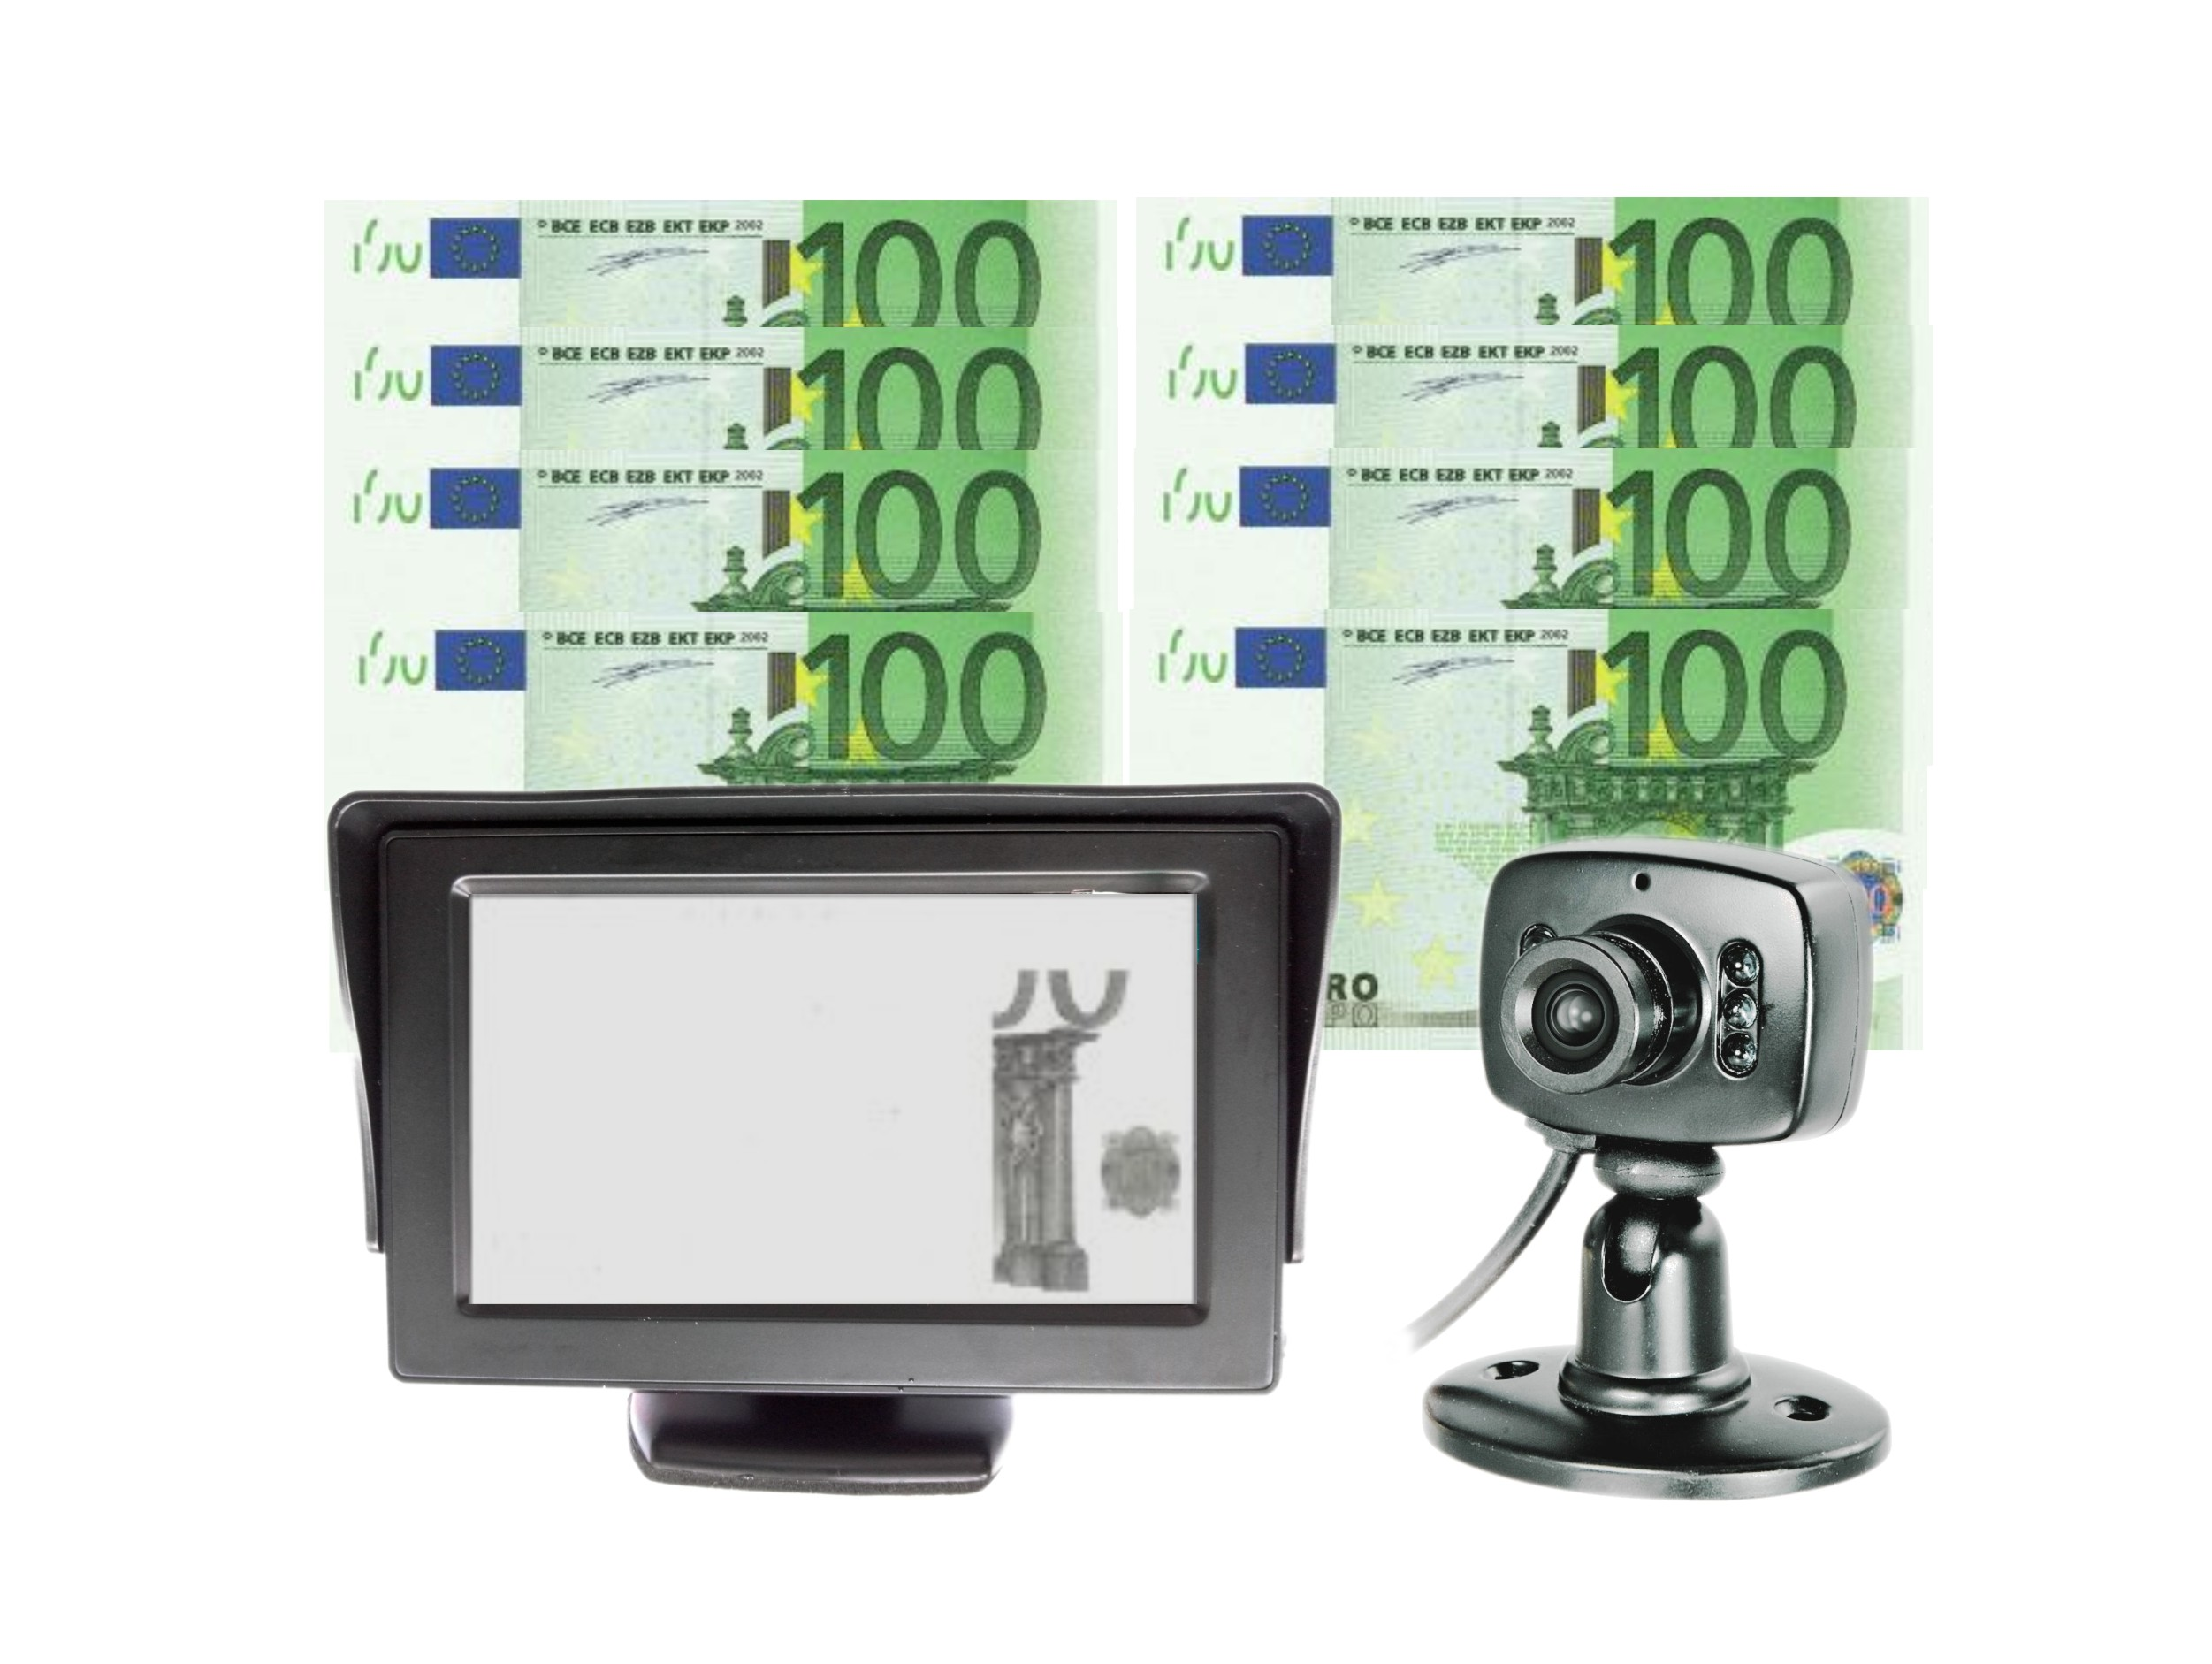 money Detector financial equipment installation is easy